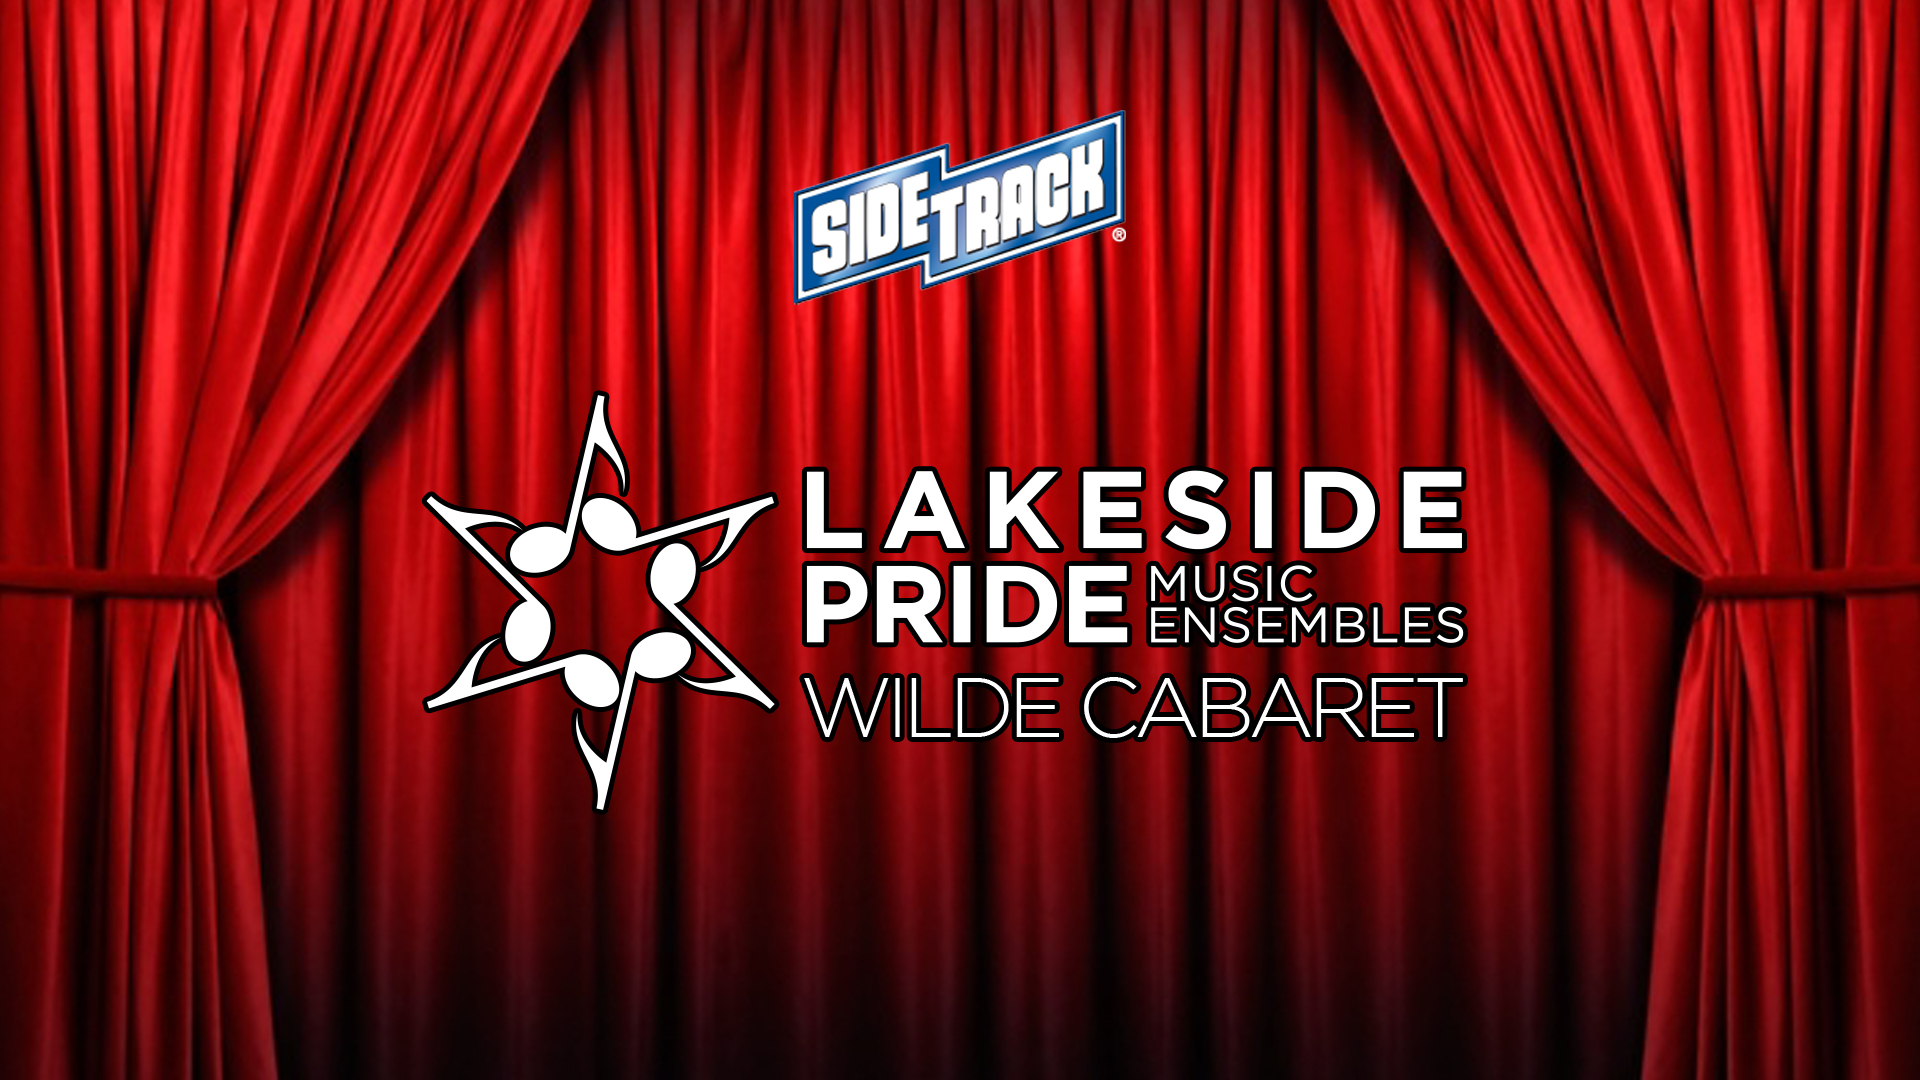 Lakeside Pride Wilde Cabaret at Sidetrack promotional graphic